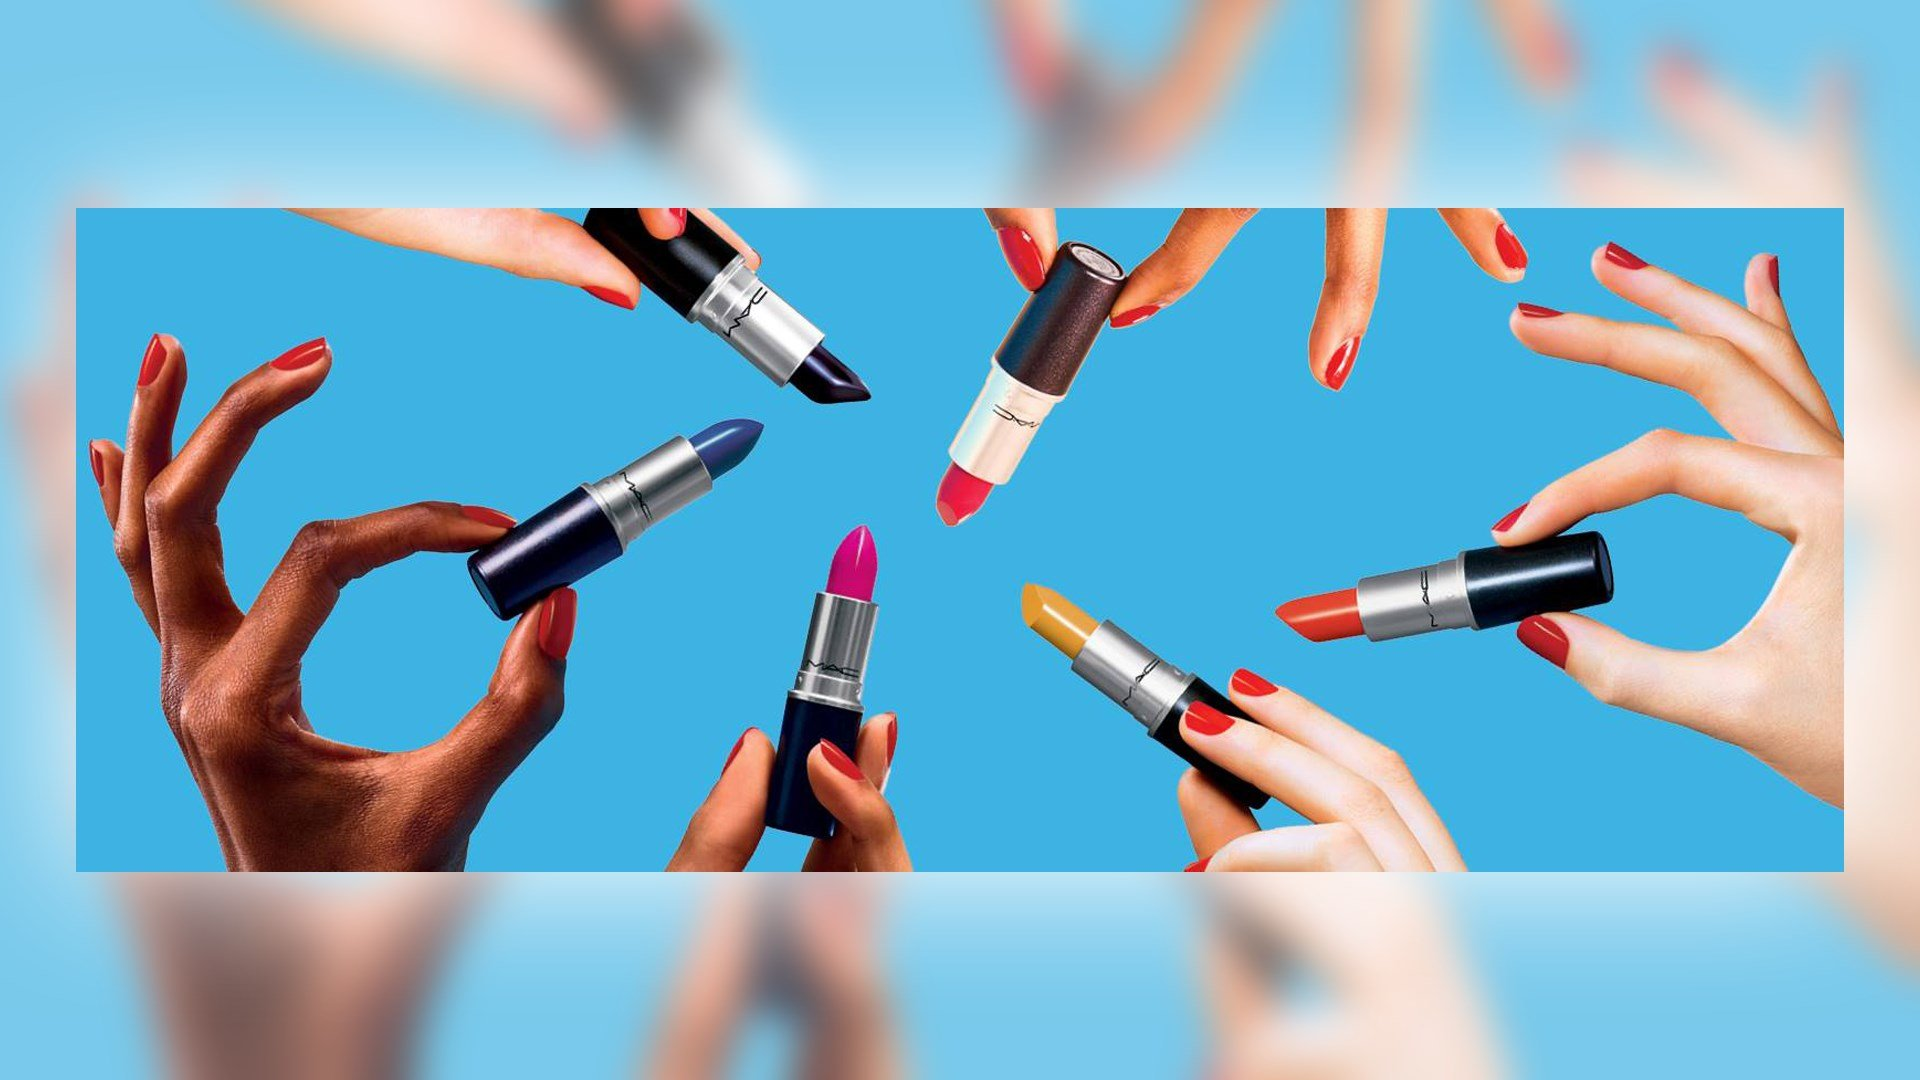 FREE MAC lipstick on Sunday, July 29